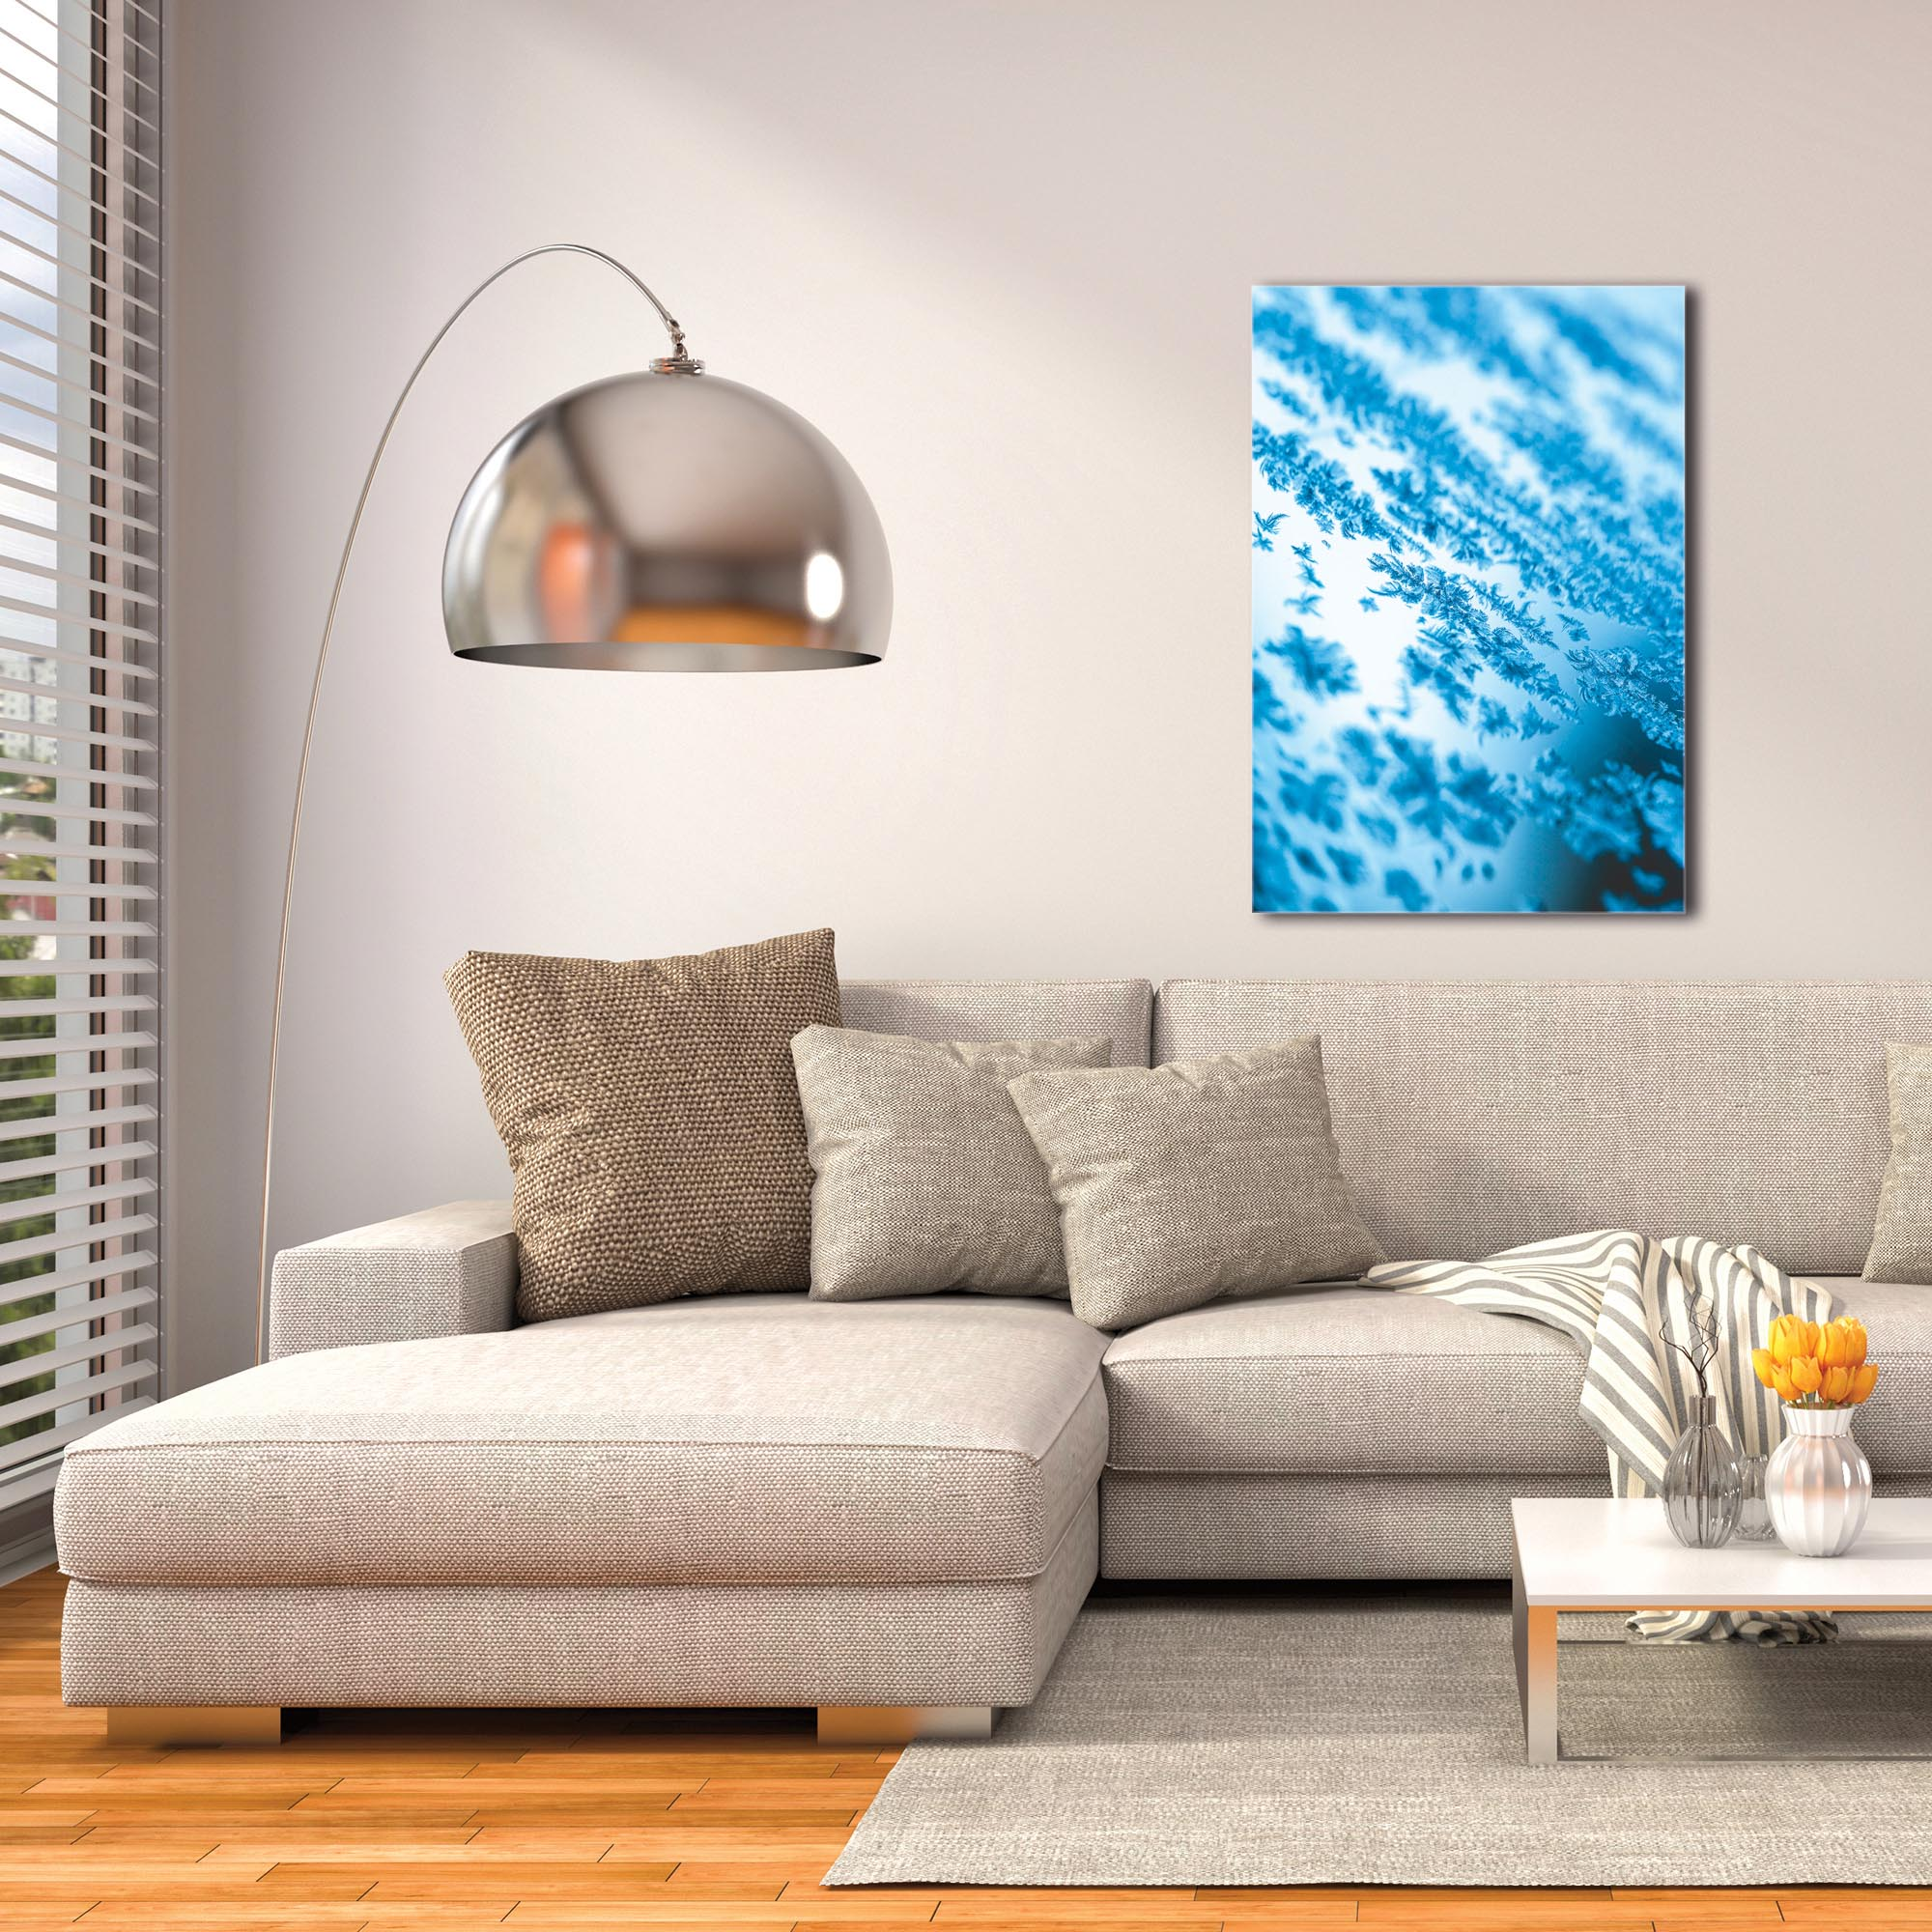 Modern Wall Art 'Icy' - Winter Decor on Metal or Plexiglass - Image 3